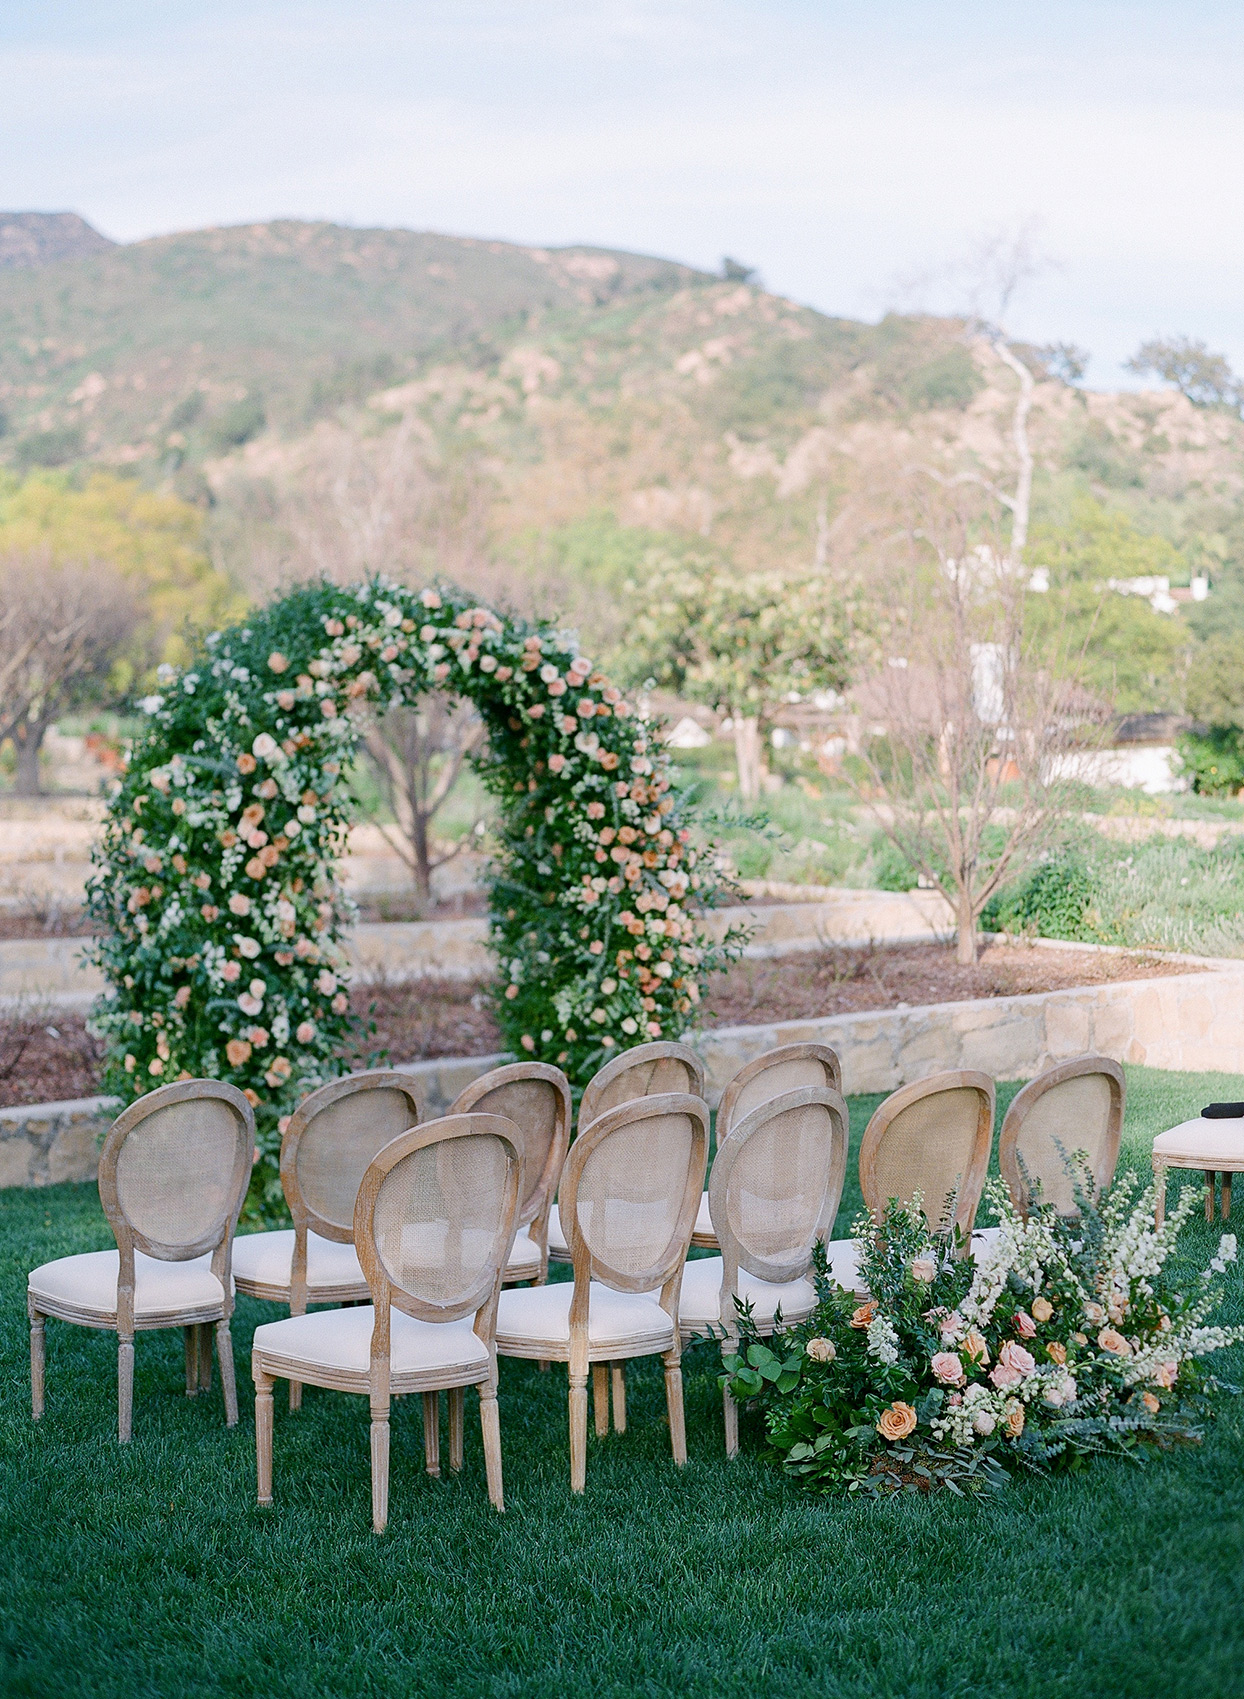 wooden chairs set up for outdoor ceremony with mountain backdrop